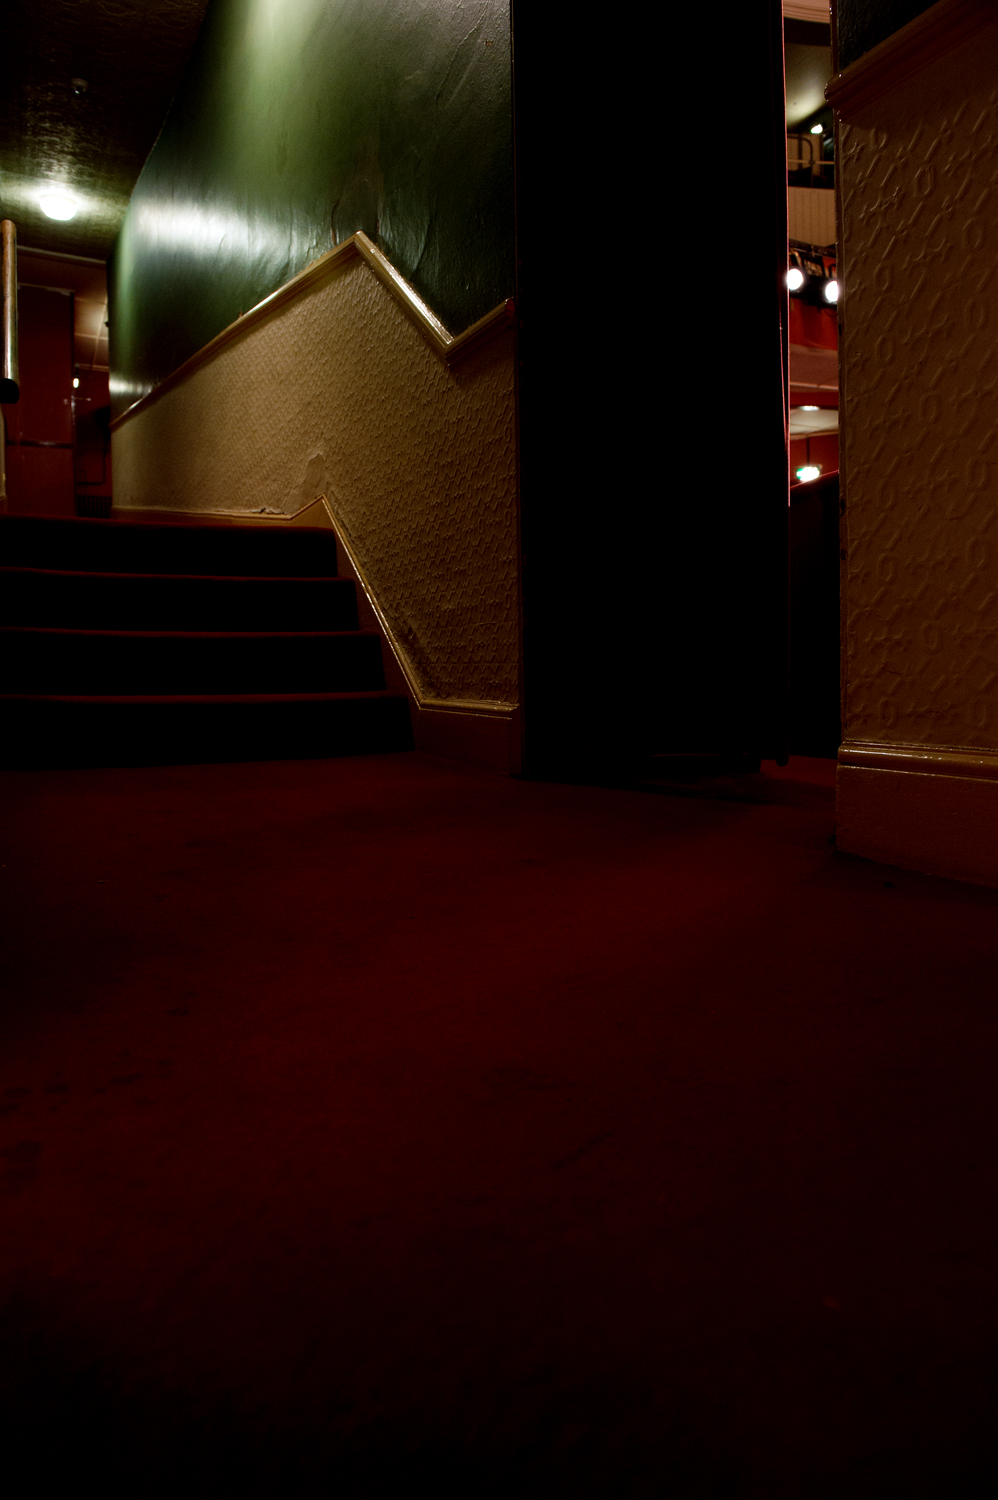 untitled #239 [royal hippodrome theatre, eastbourne, east sussex, england, 2011]